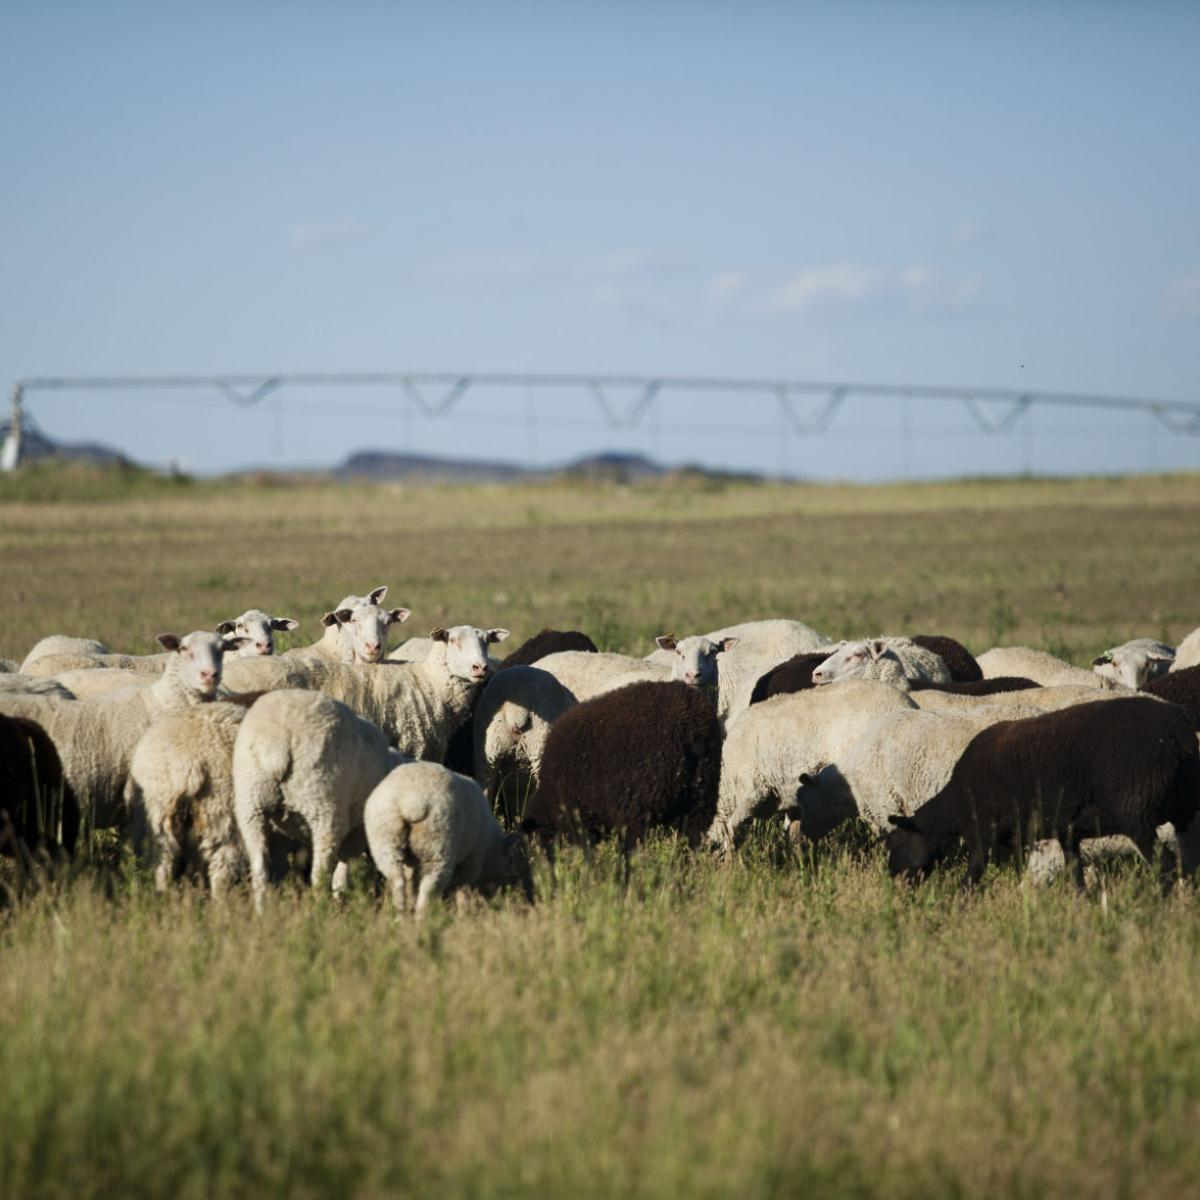 Domestic sheep milk production for cheese gets attention